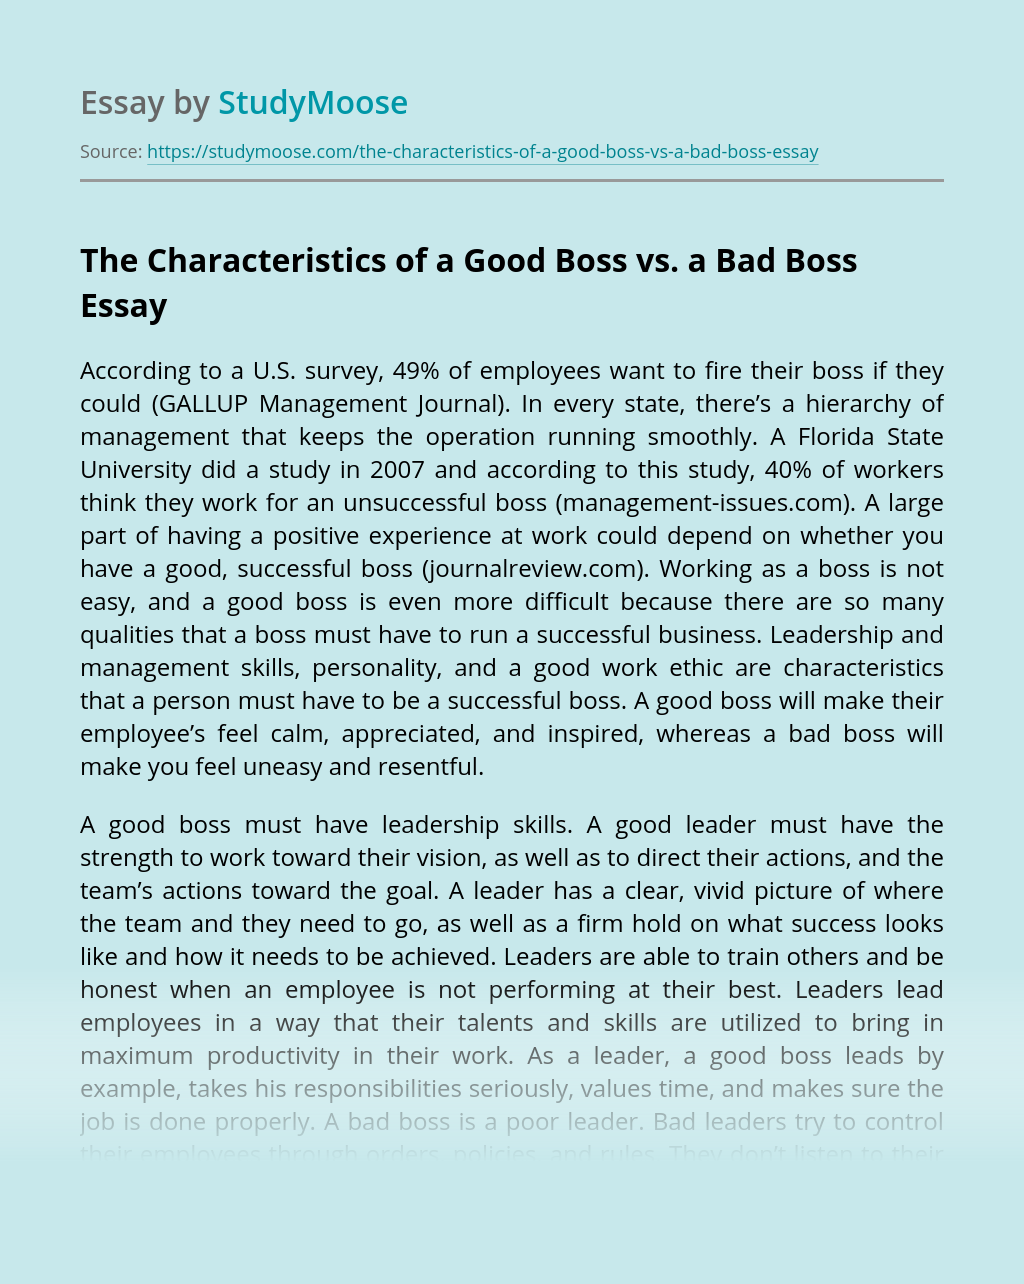 The Characteristics of a Good Boss vs. a Bad Boss